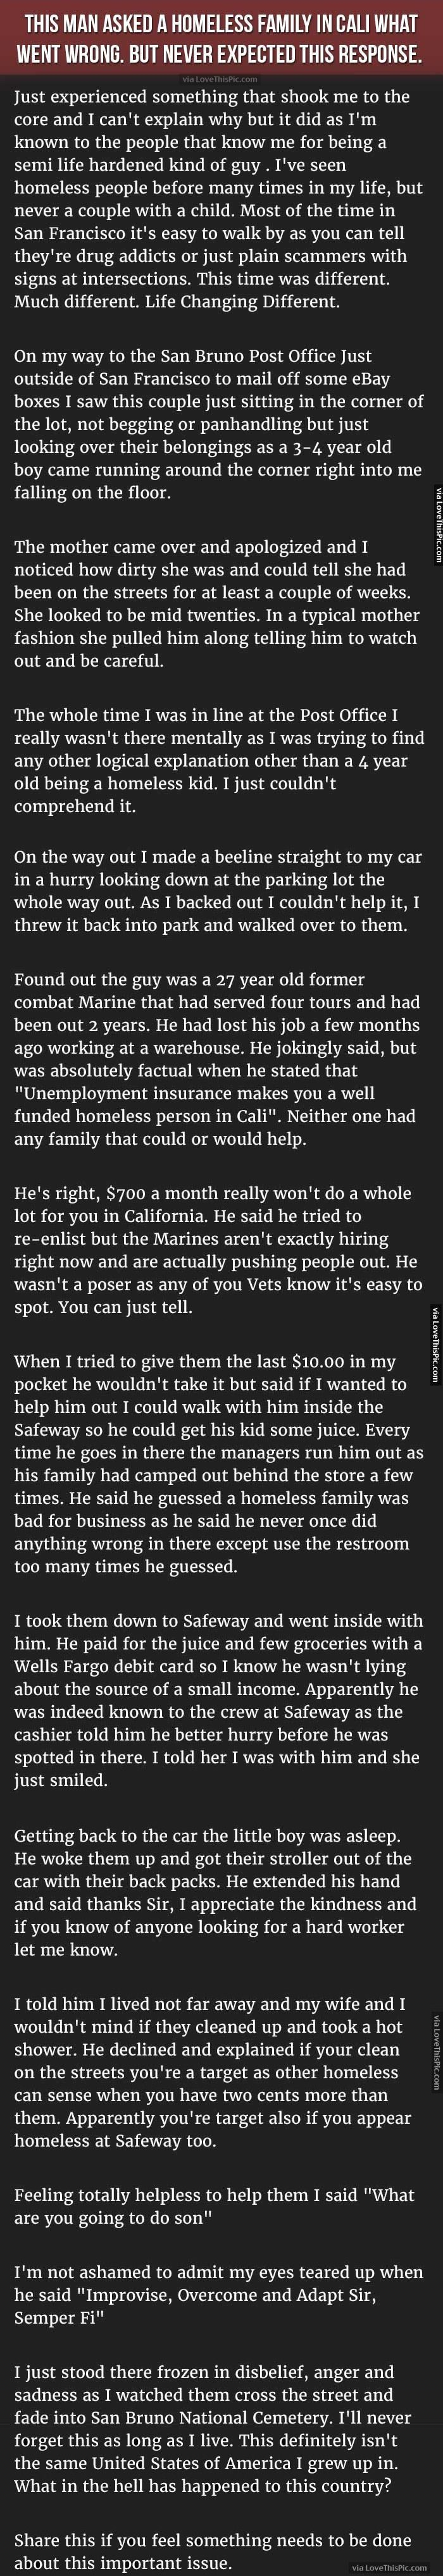 Man Asks Homeless Family What Went Wrong But Never Expected This Response story stories facts interesting change awareness people homelessness